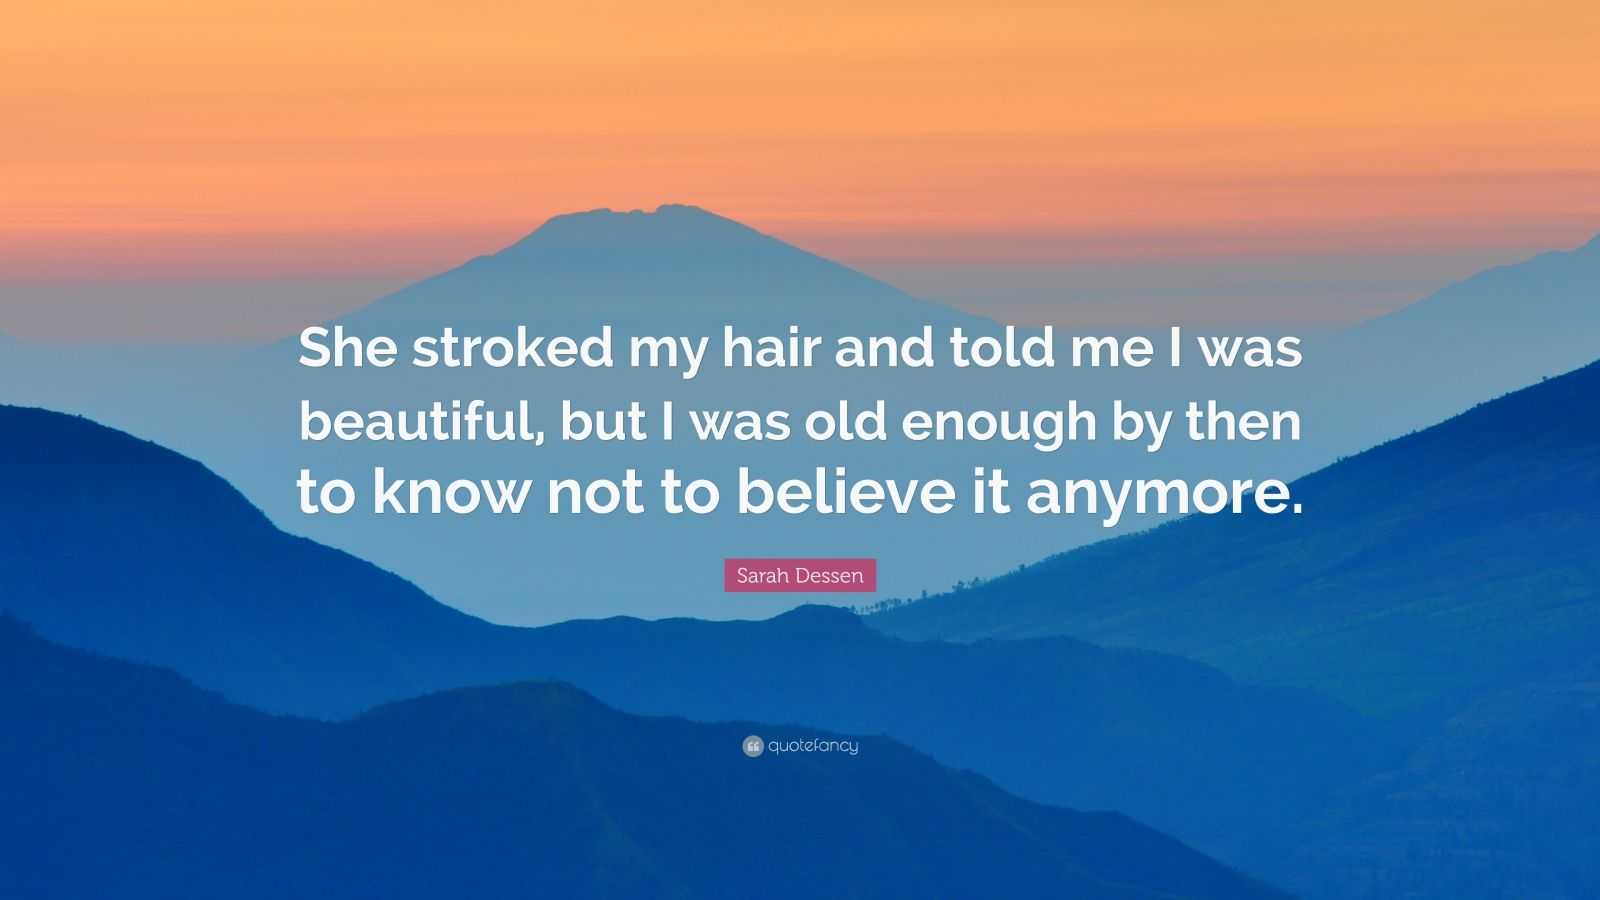 """Sarah Dessen Quote: """"She stroked my hair and told me I was beautiful, but I was old enough by then to know not to believe it anymore."""""""